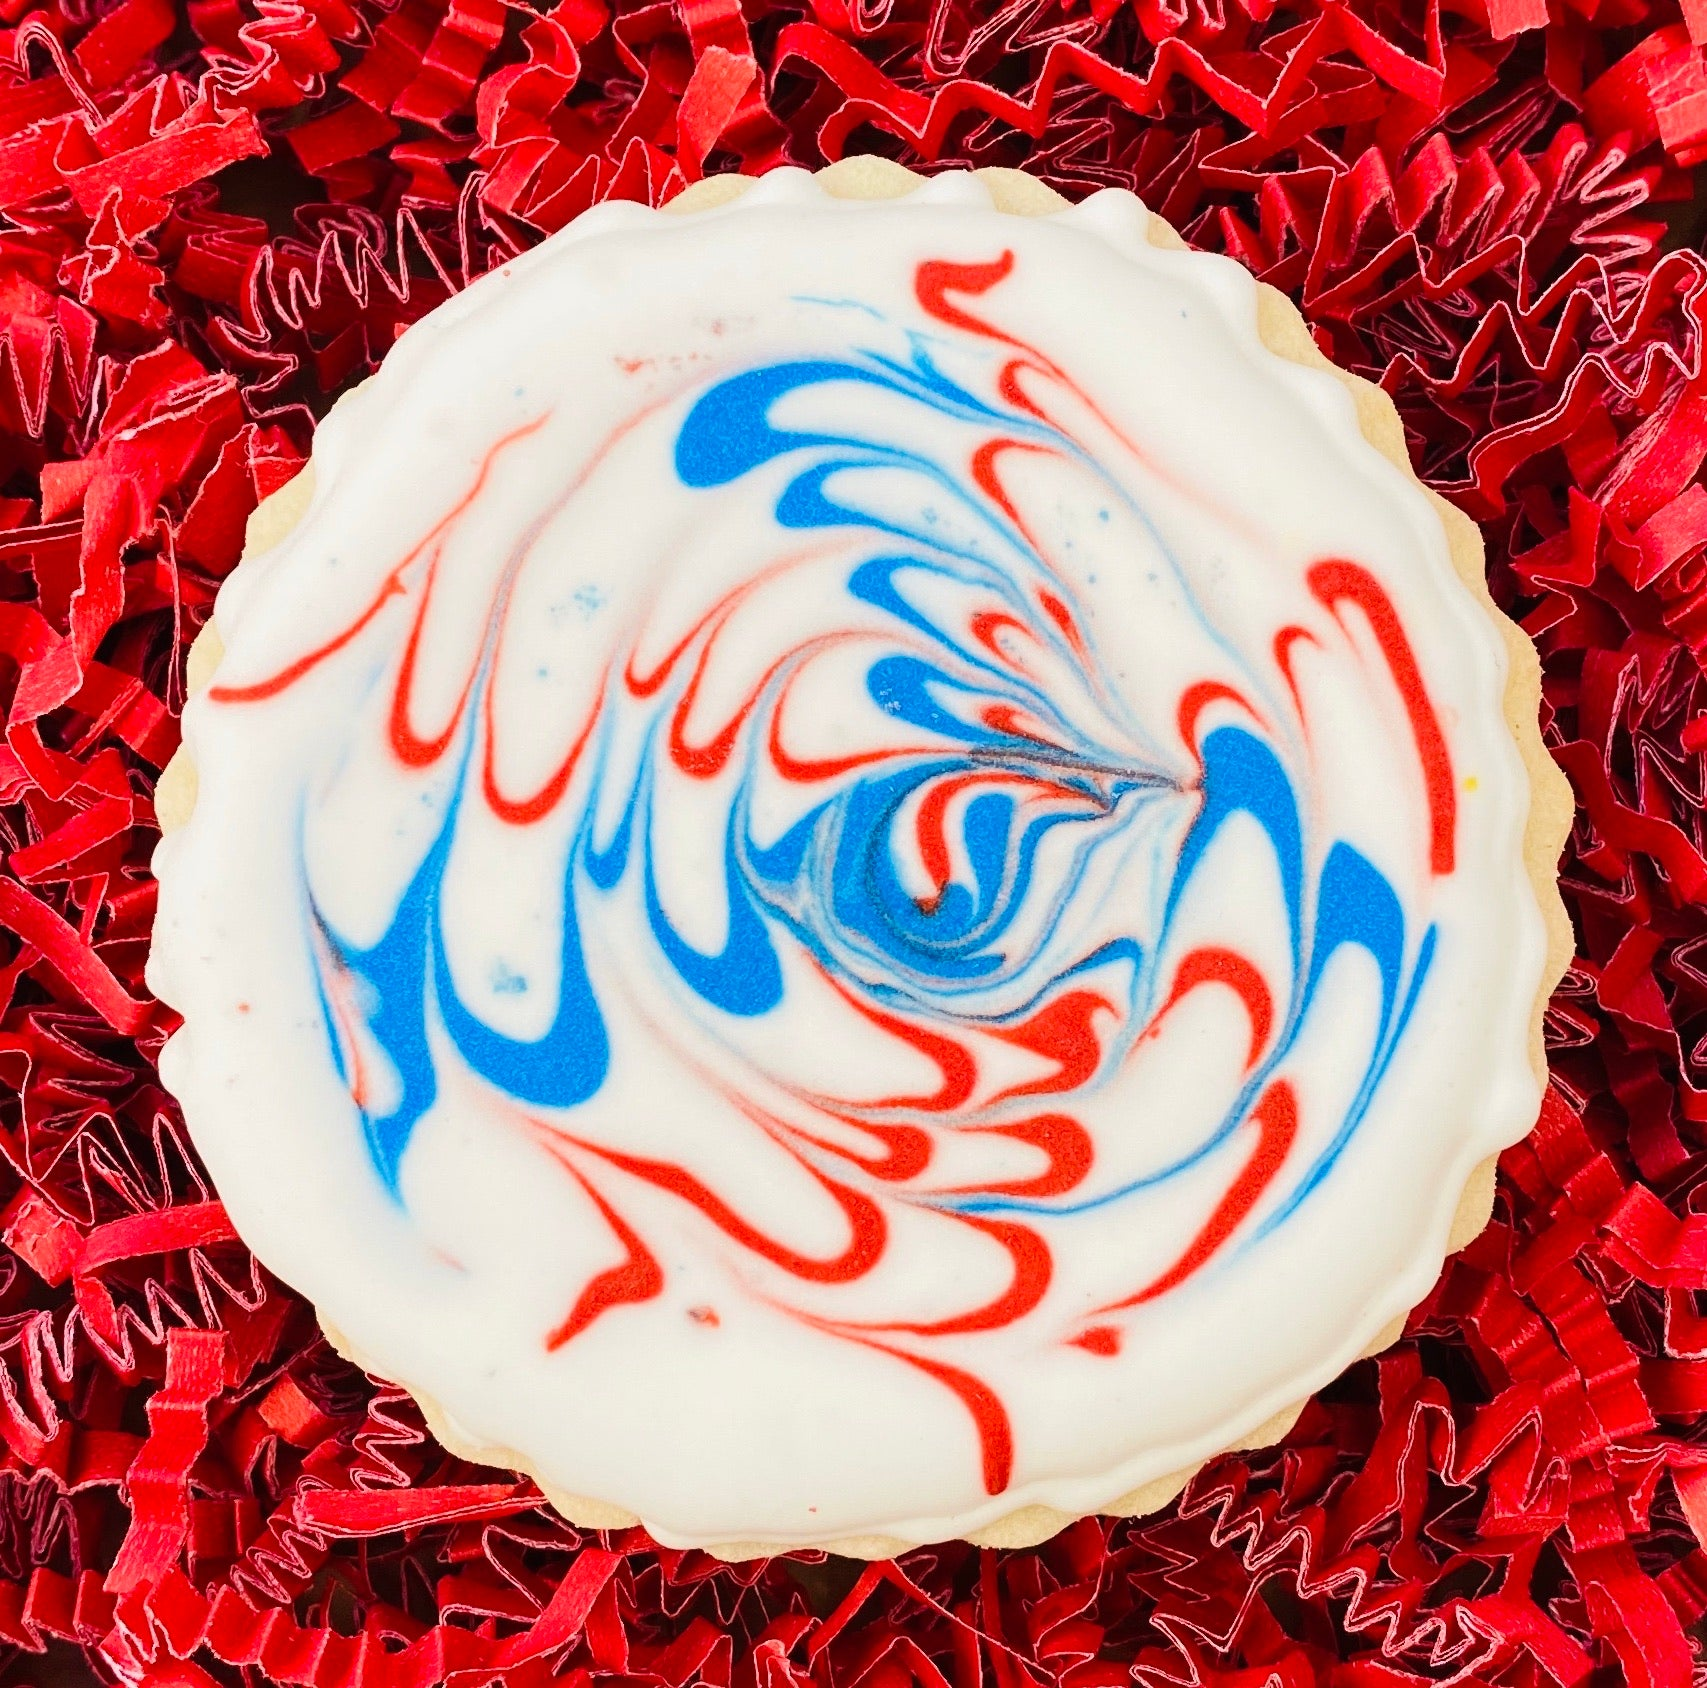 LABOR DAY FIREWORKS COOKIE FAVORS